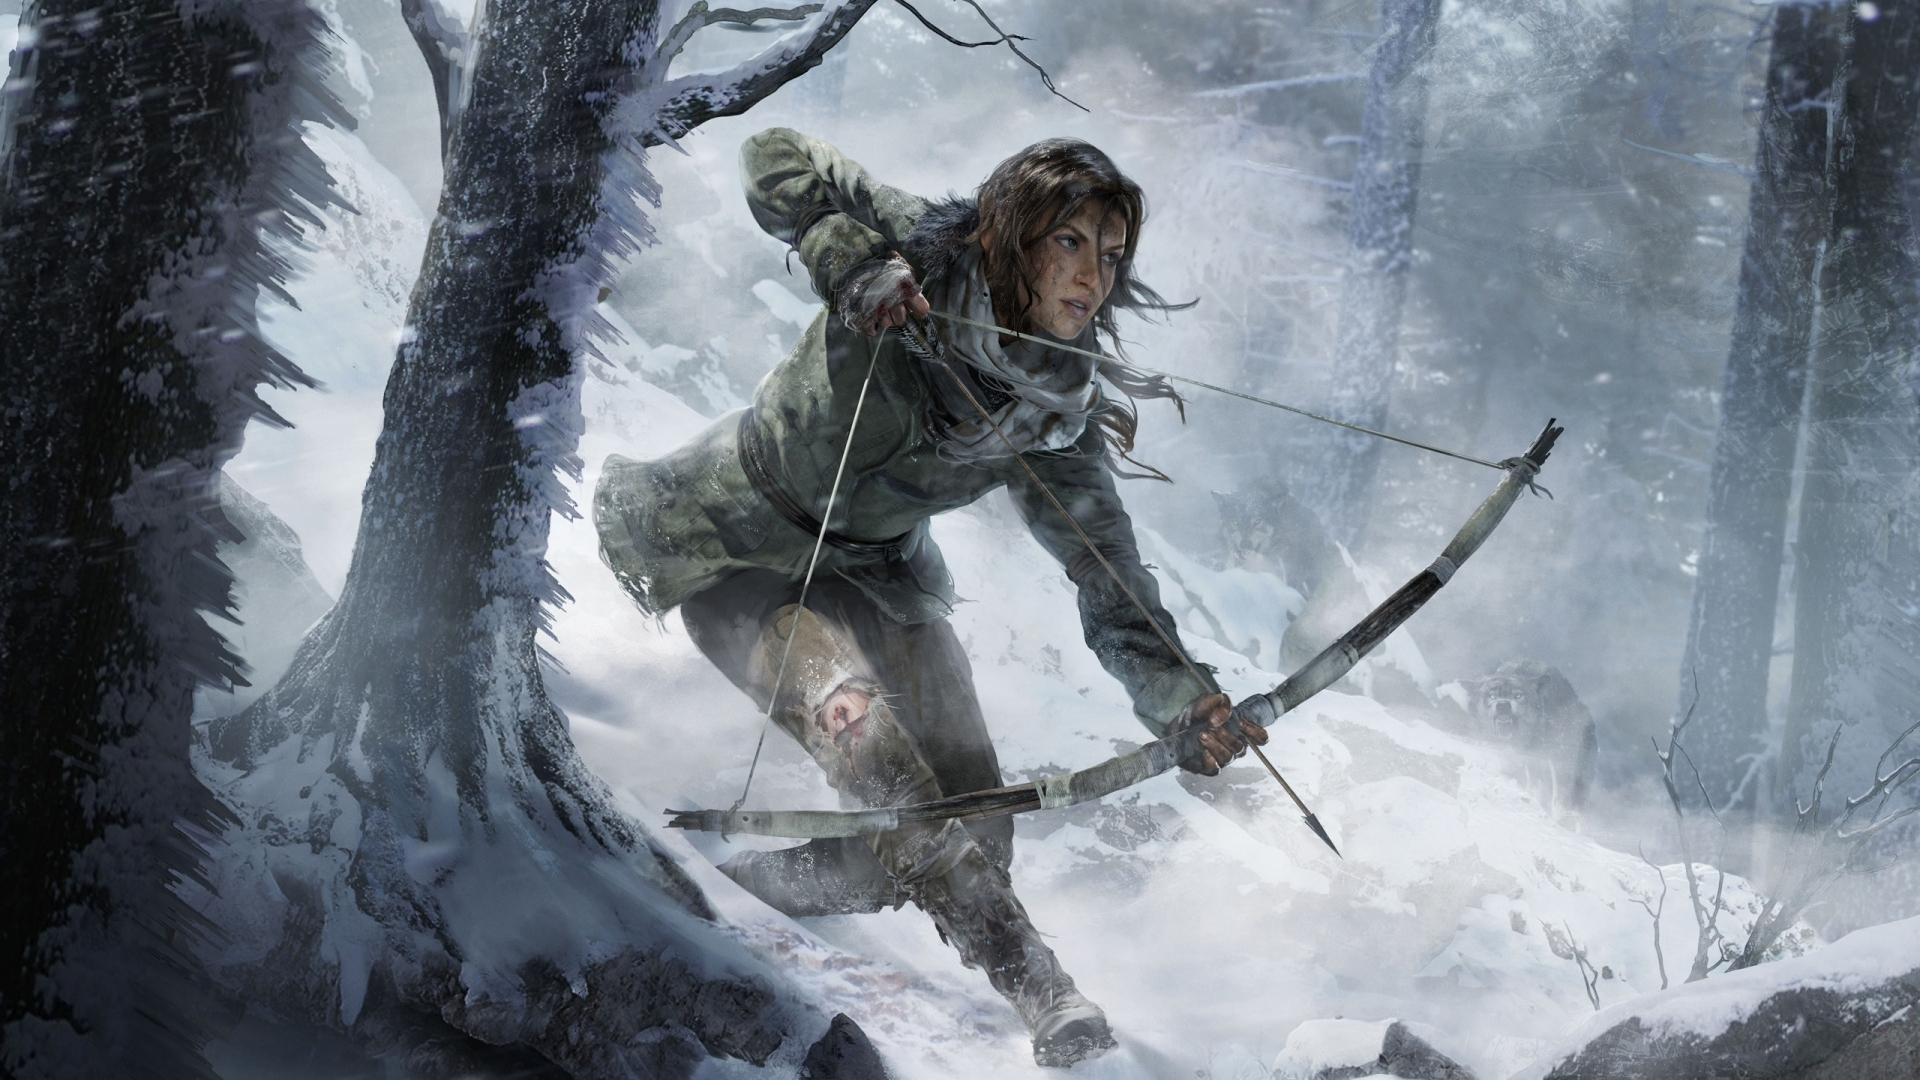 Tomb Raider - Rise of the Tomb Raider